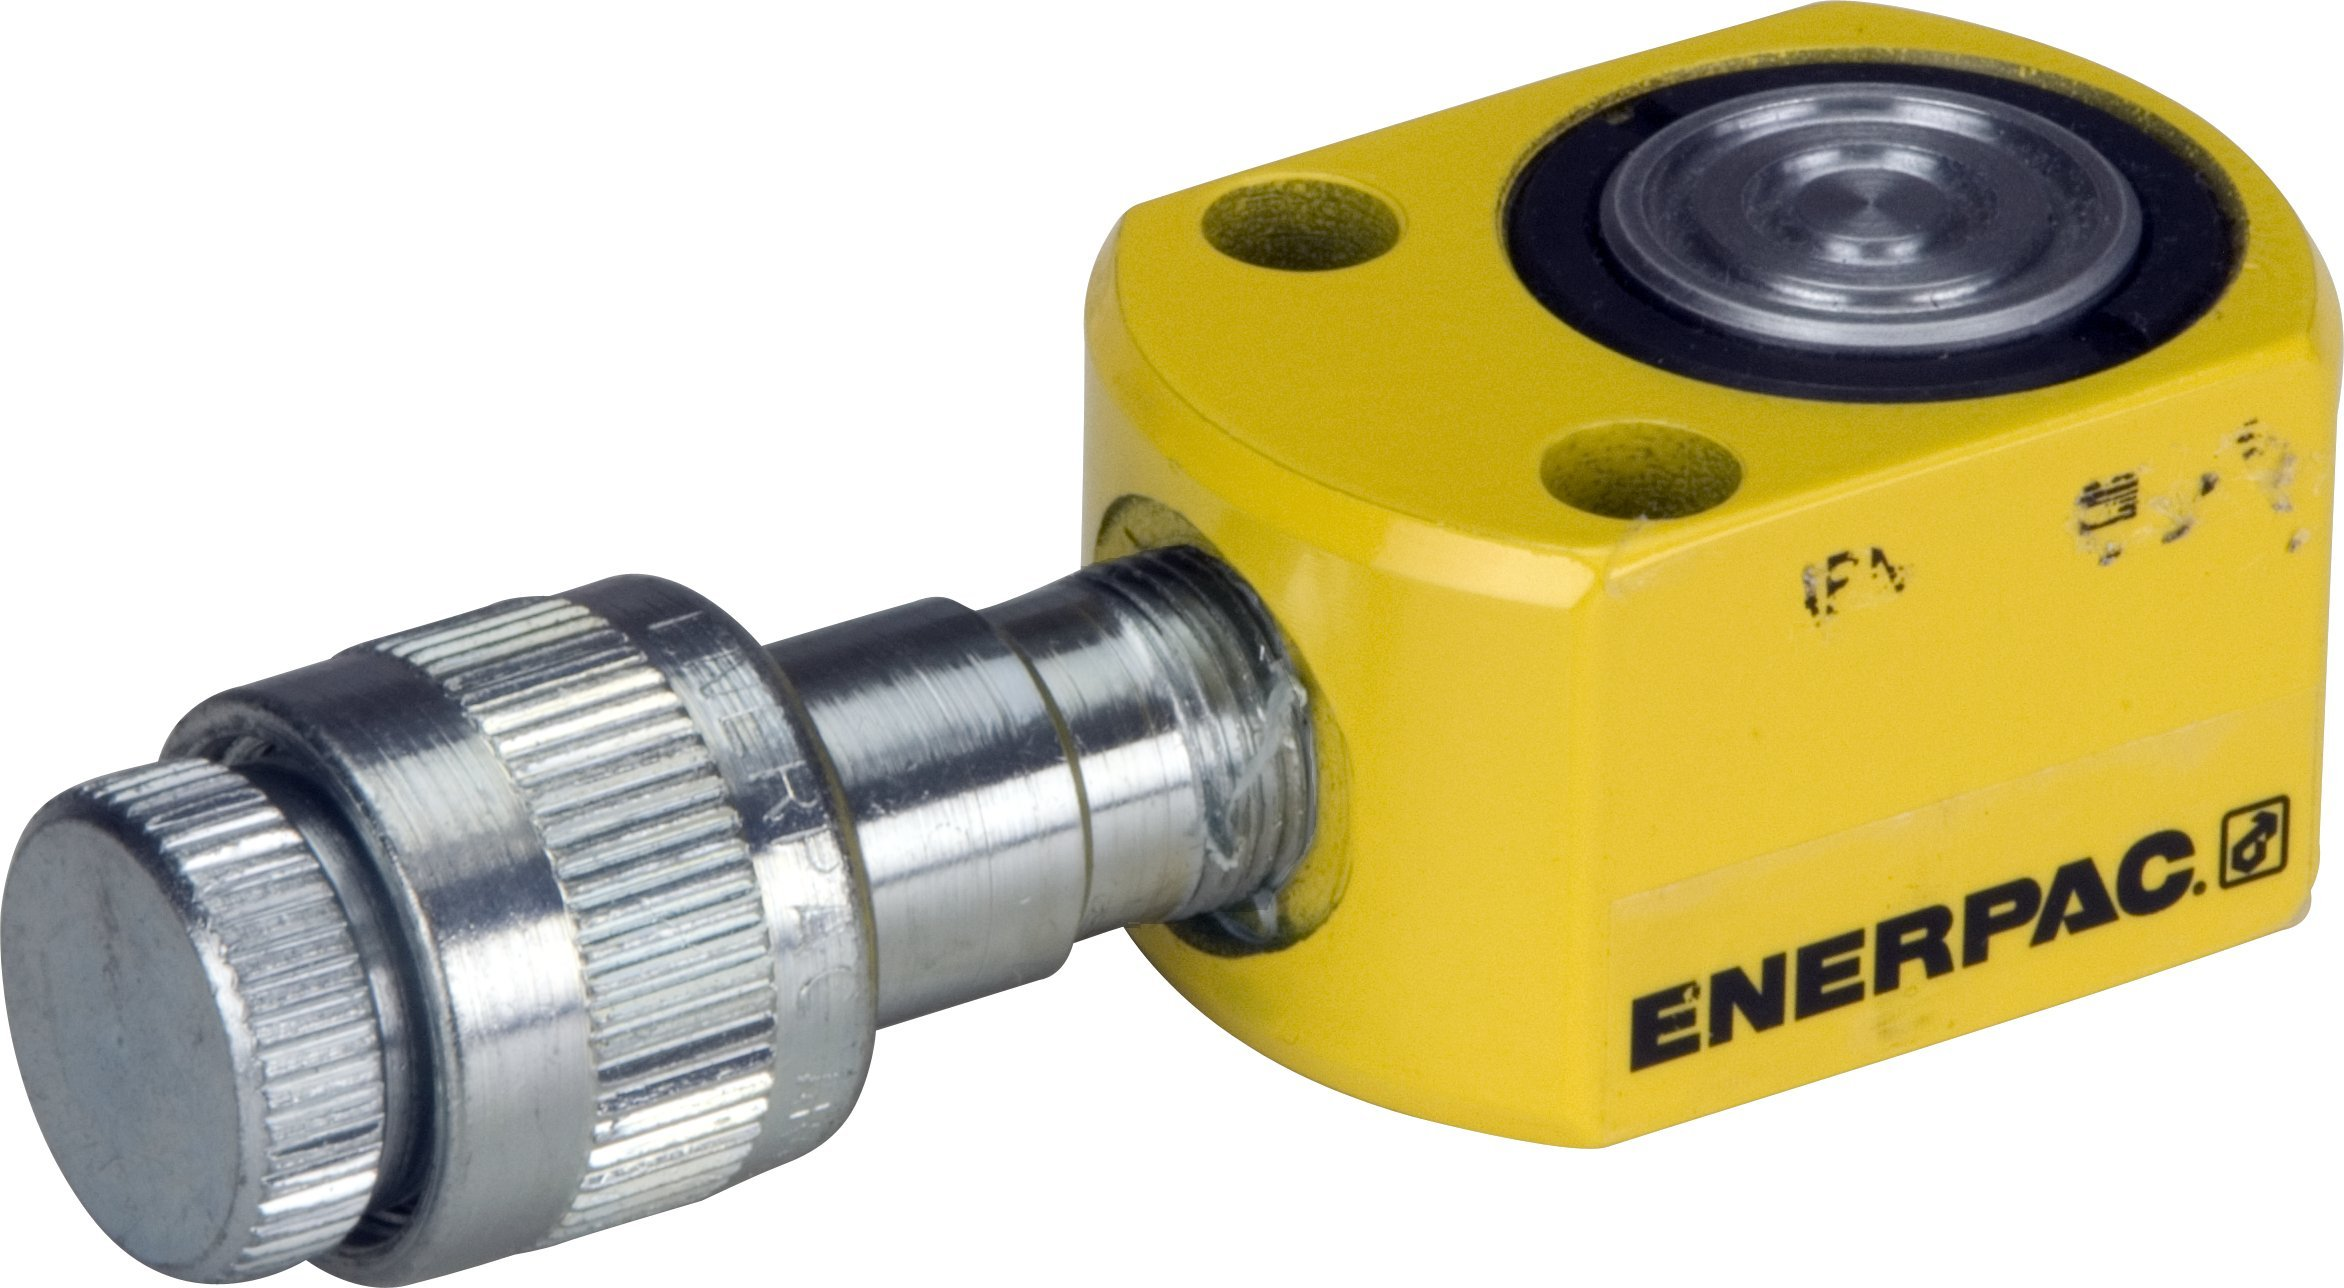 Enerpac RSM-50 Flat Jac Single-Acting Low-Height Hydraulic Cylinder with 5-Ton Capacity, Single Port, 0.25'' Stroke Length